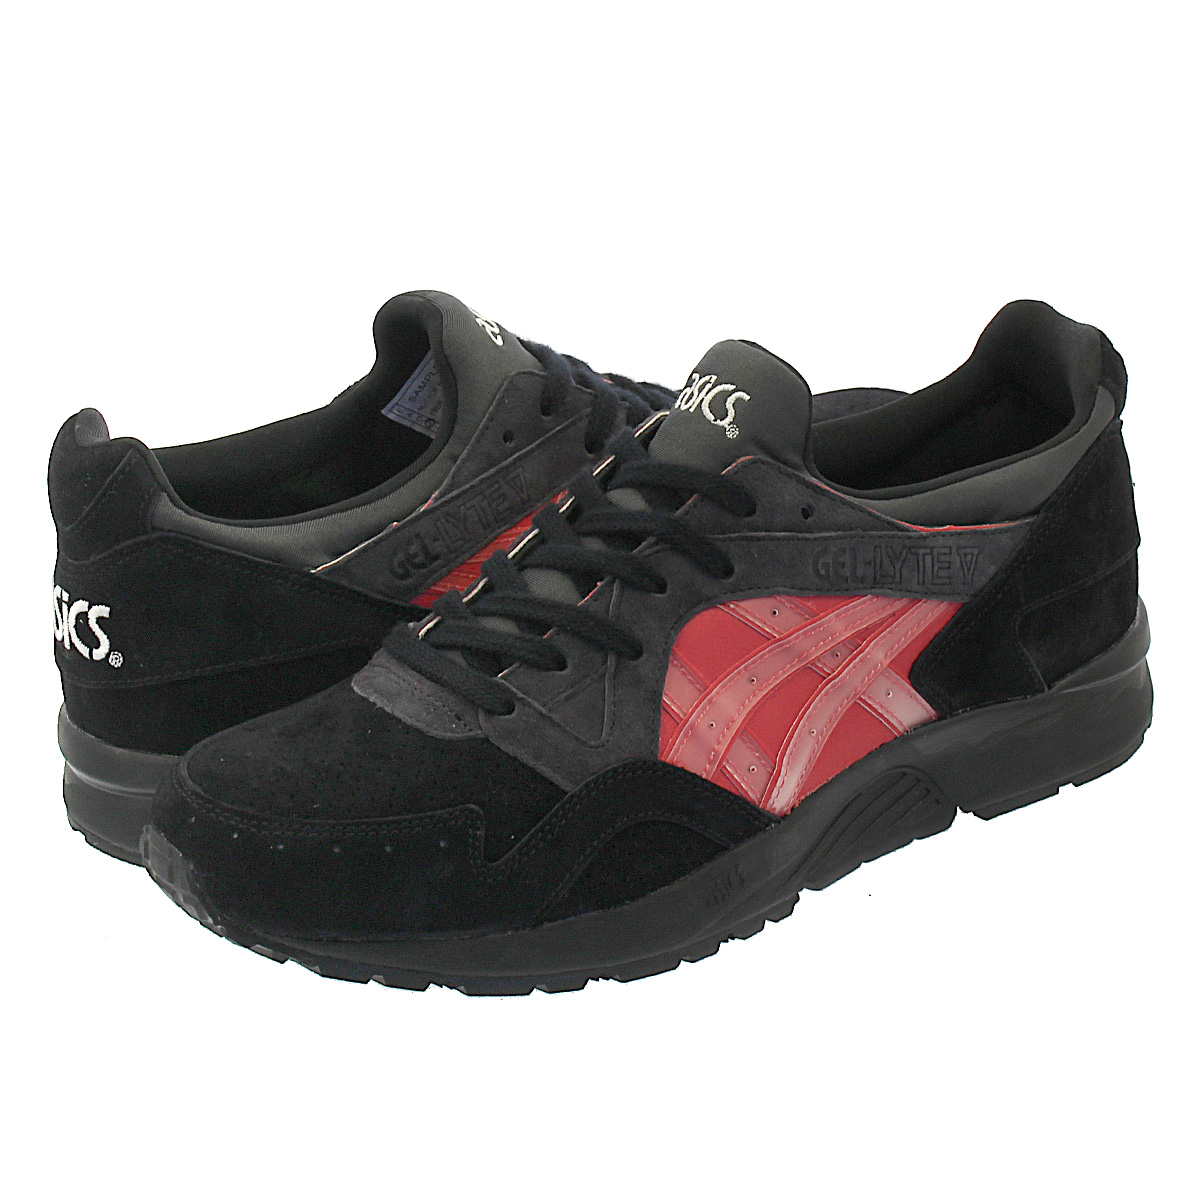 "【スーパーSALE】ASICS Tiger GEL-LYTE V ""KLSHOGUN"" for KICKS LAB. 【KICKSLAB. x ASICS Tiger】 アシックス ゲルライト 5 BLACK/CLASSIC RED"